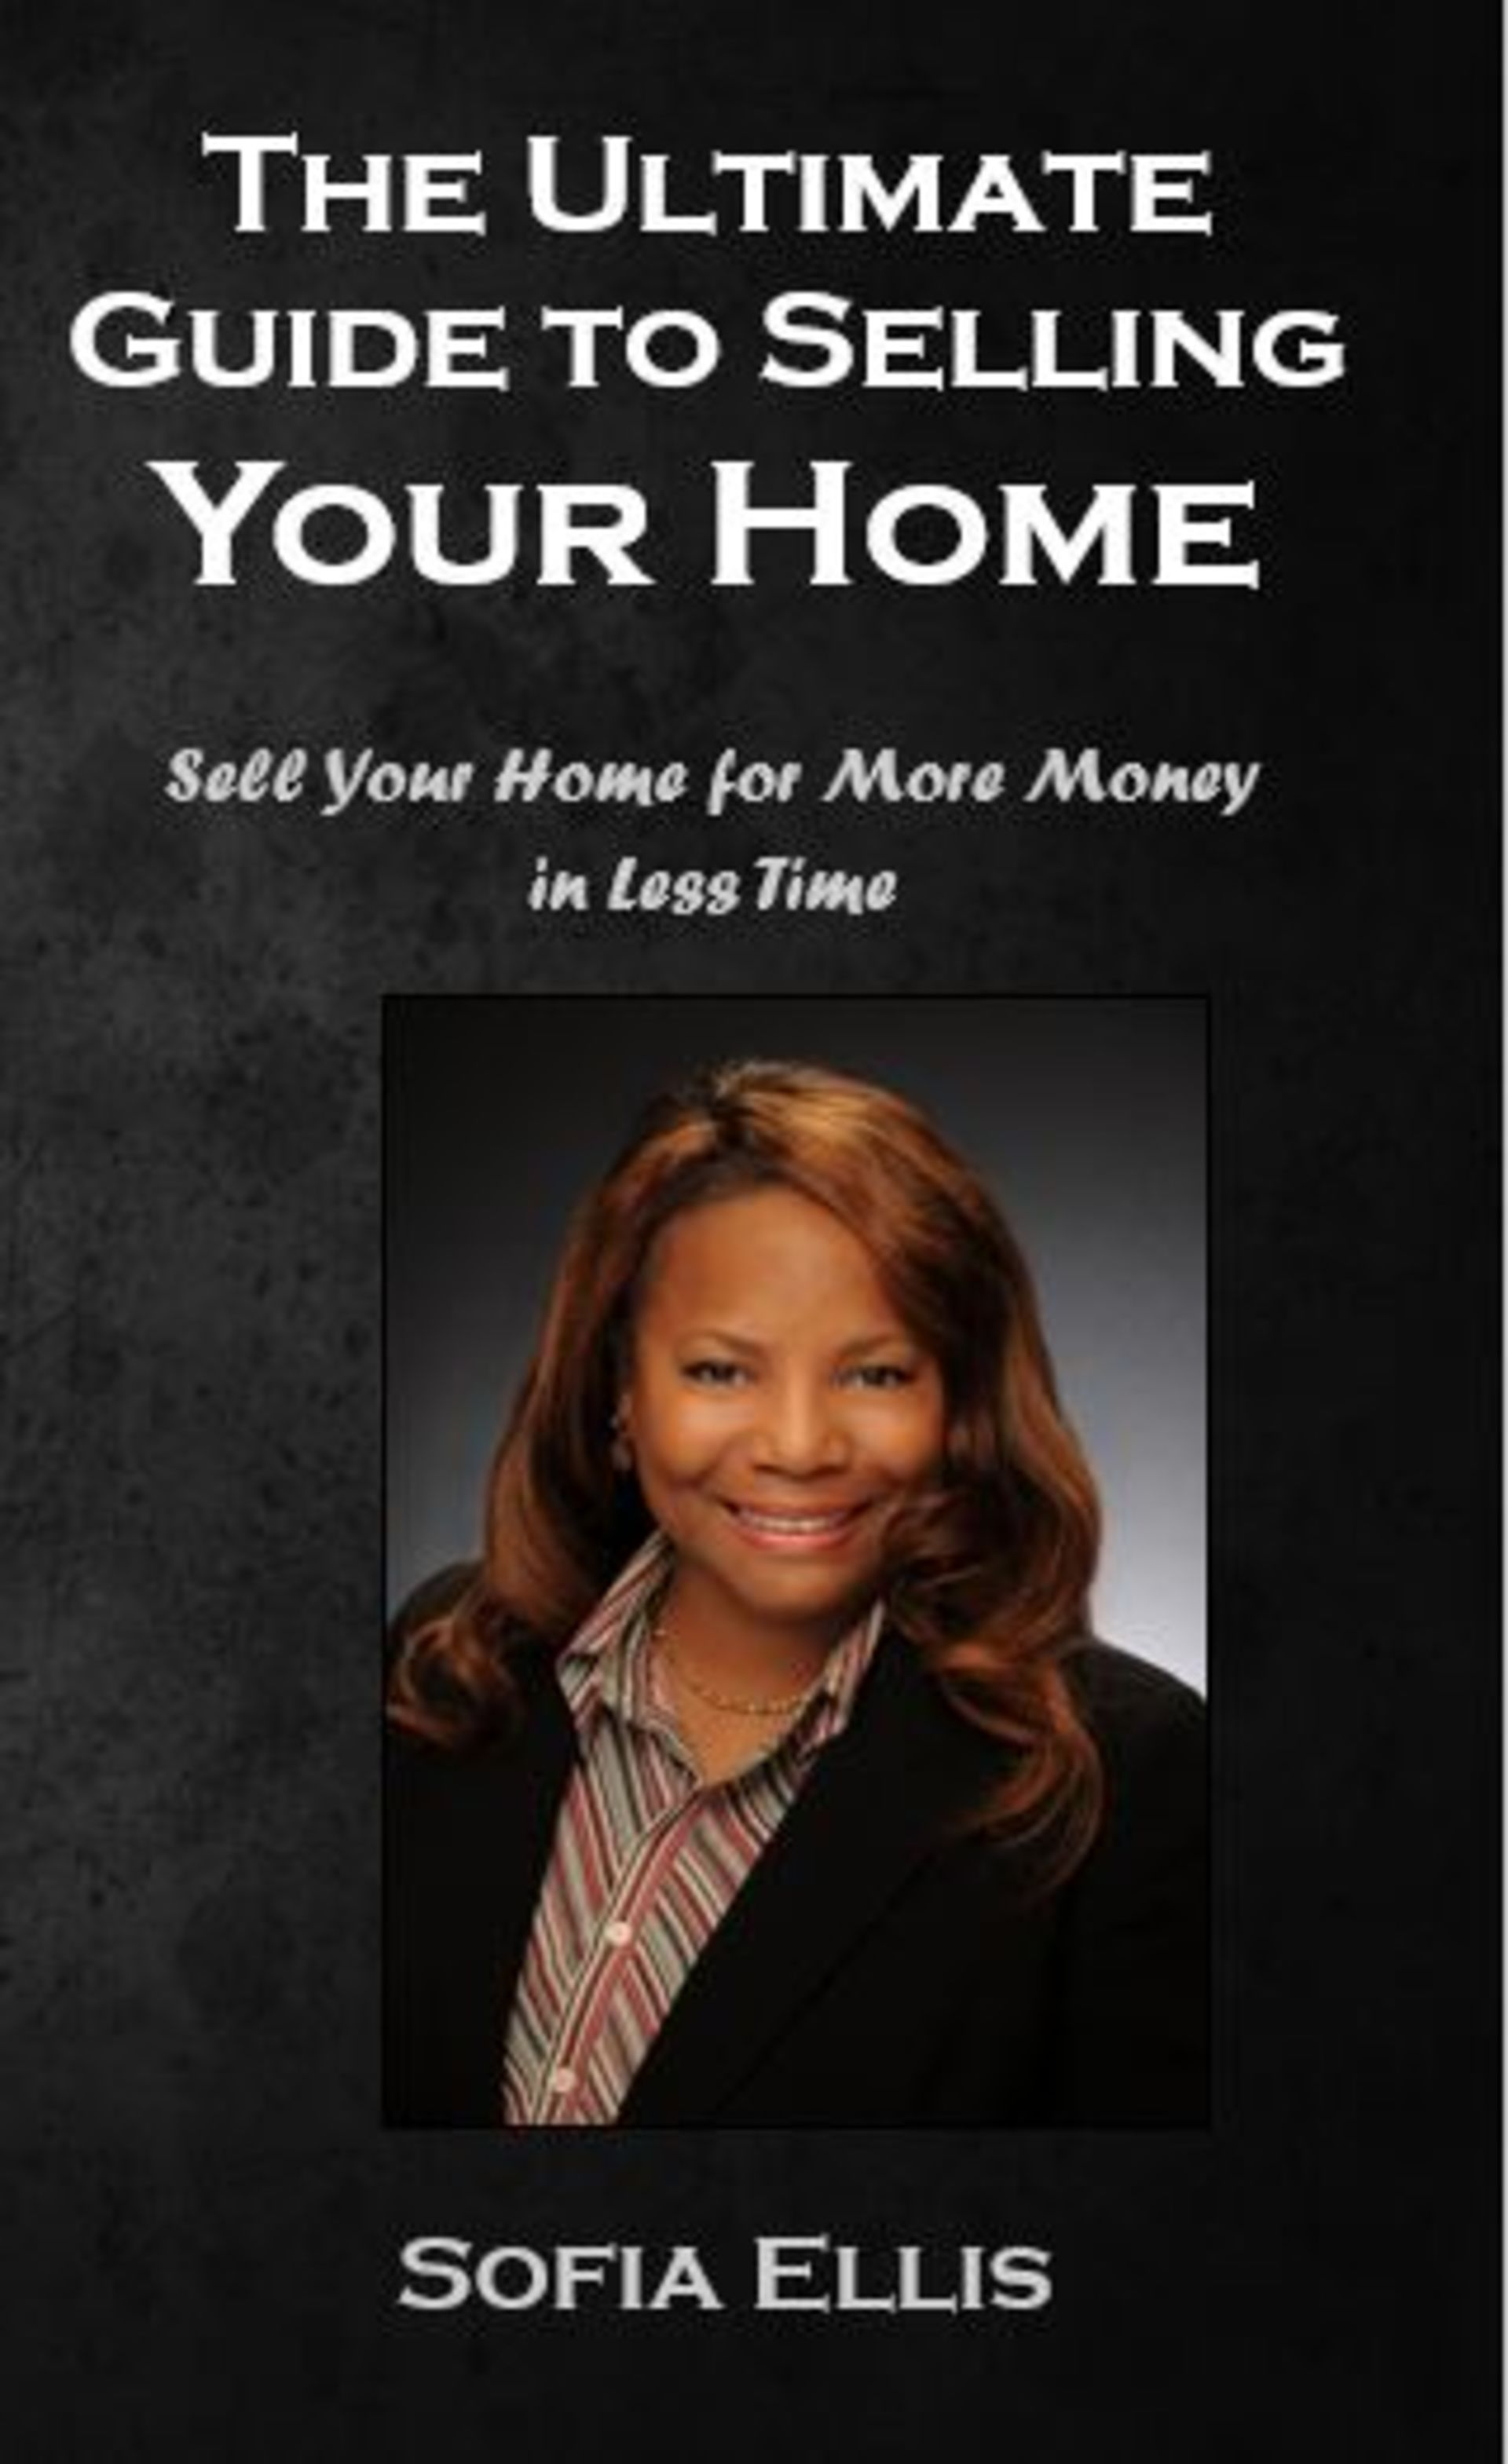 Order my Free Guide to Selling Your Home